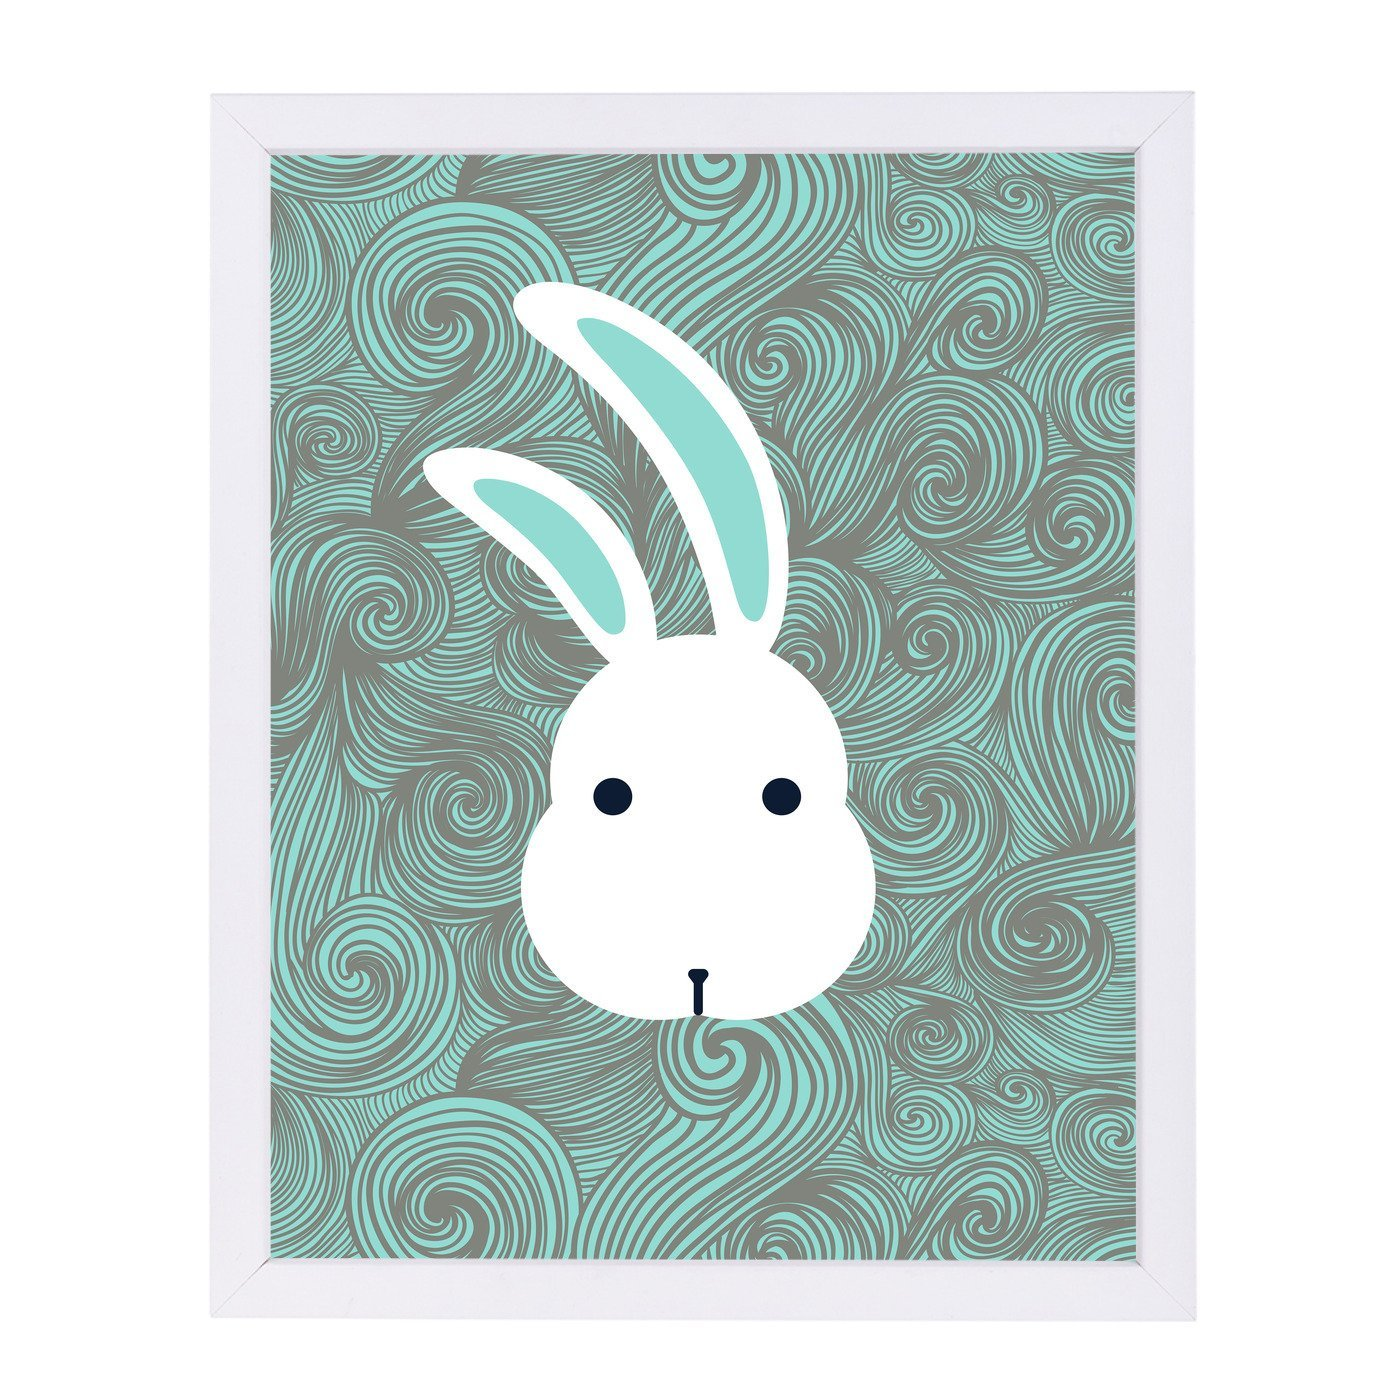 Bunny White By Good Vibe Design - White Framed Print - Wall Art - Americanflat